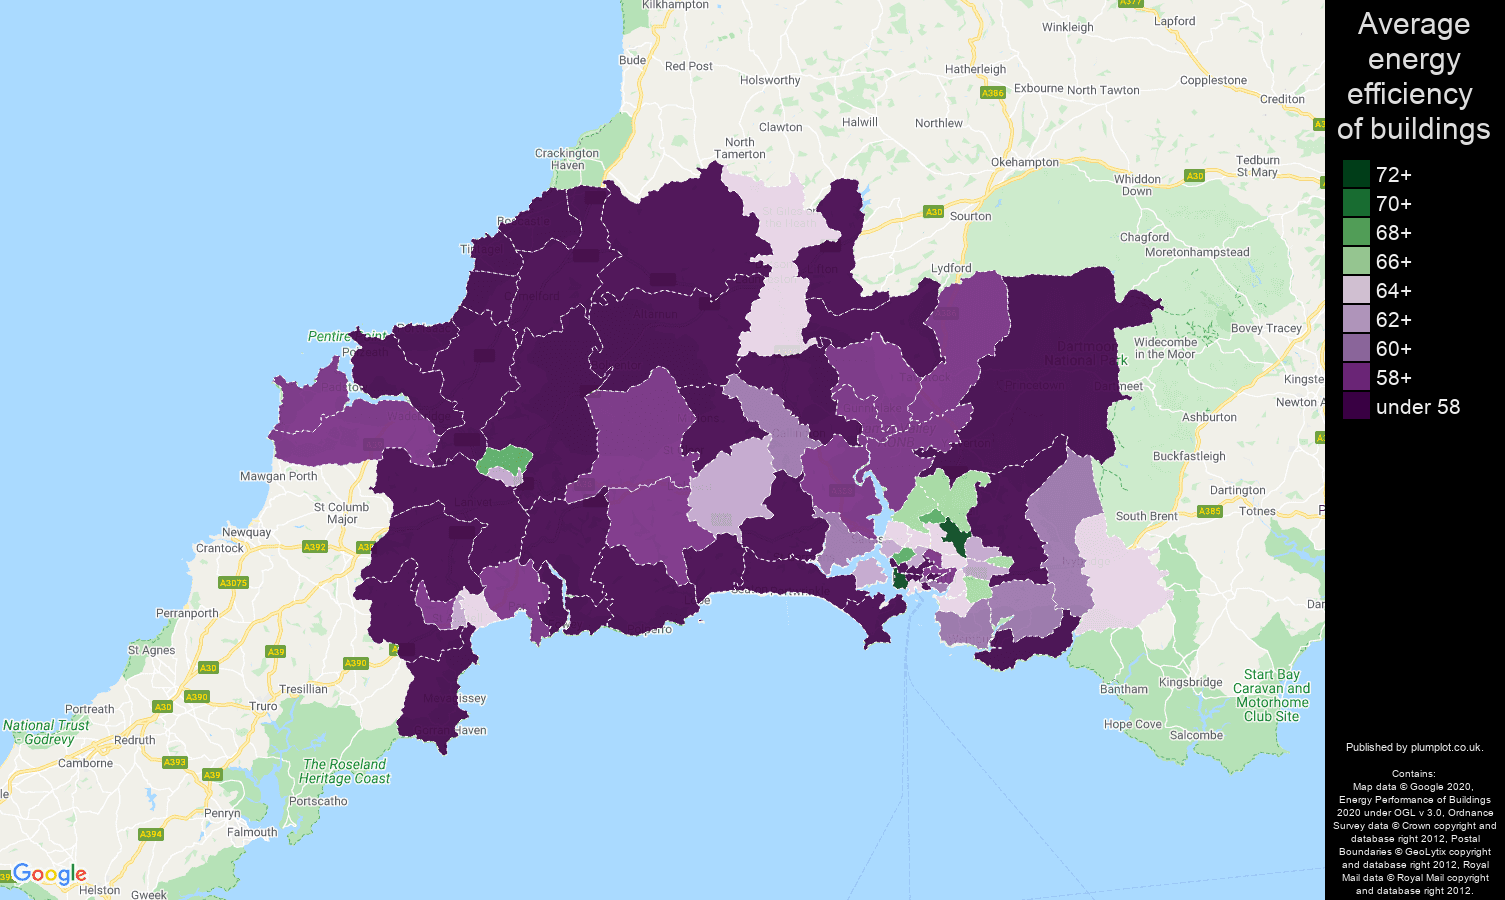 Plymouth map of energy efficiency of houses